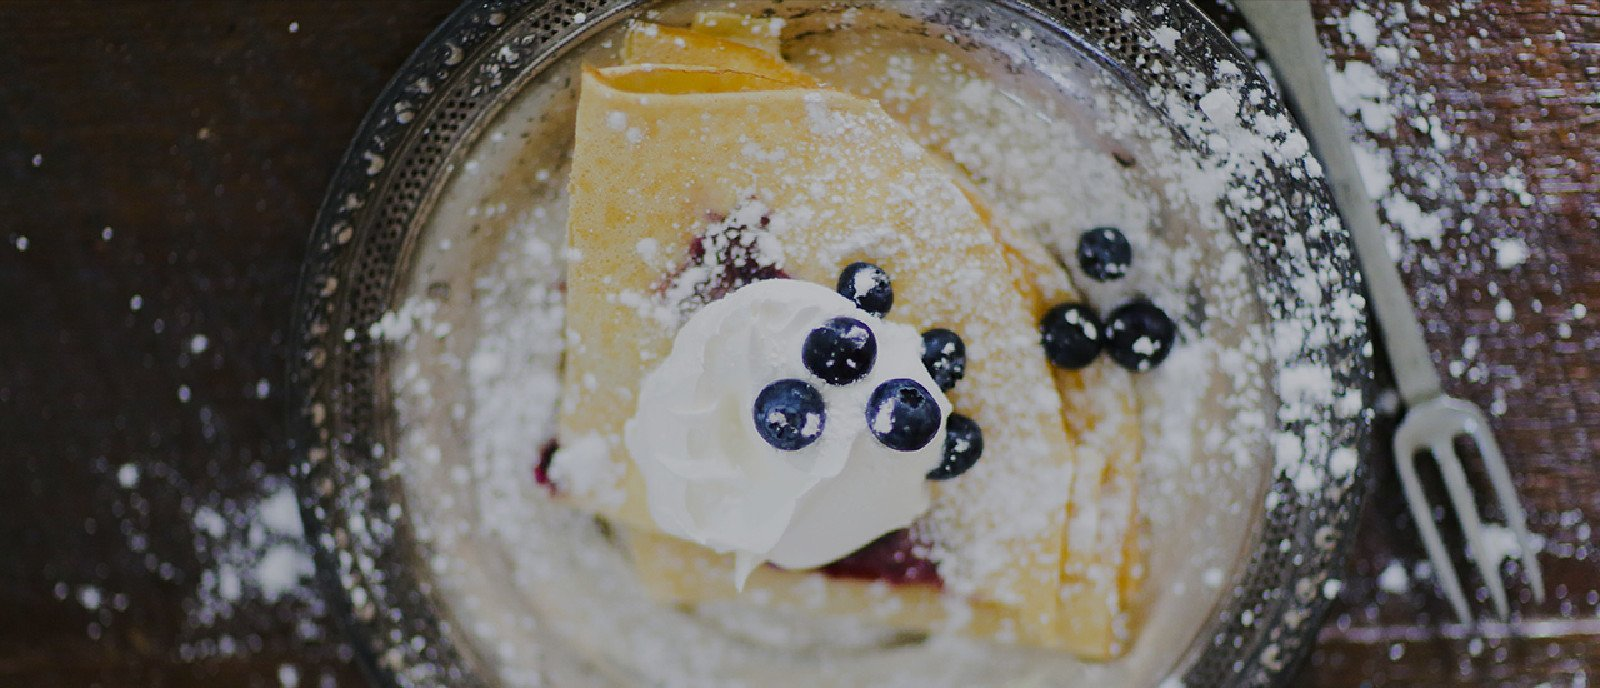 Recipe Photo of Crepes with Blueberry Syrup and whipped cream